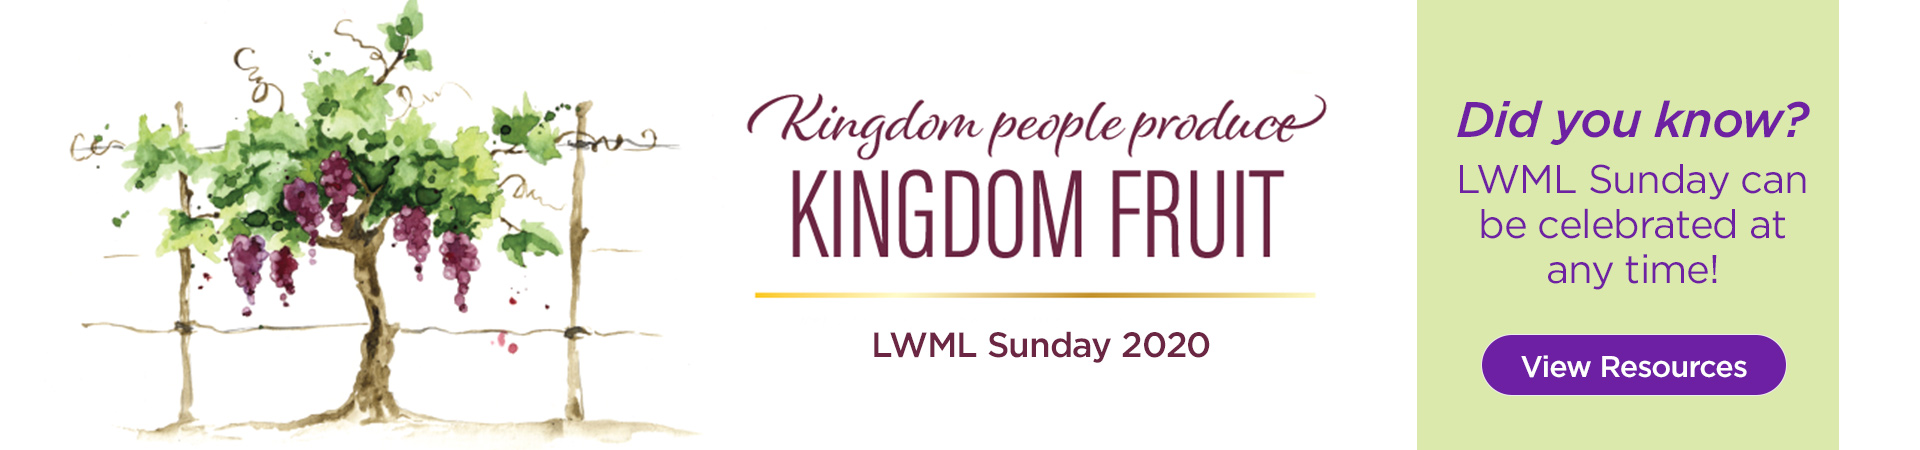 LWML Sunday can be celebrated at any time! View resources here.